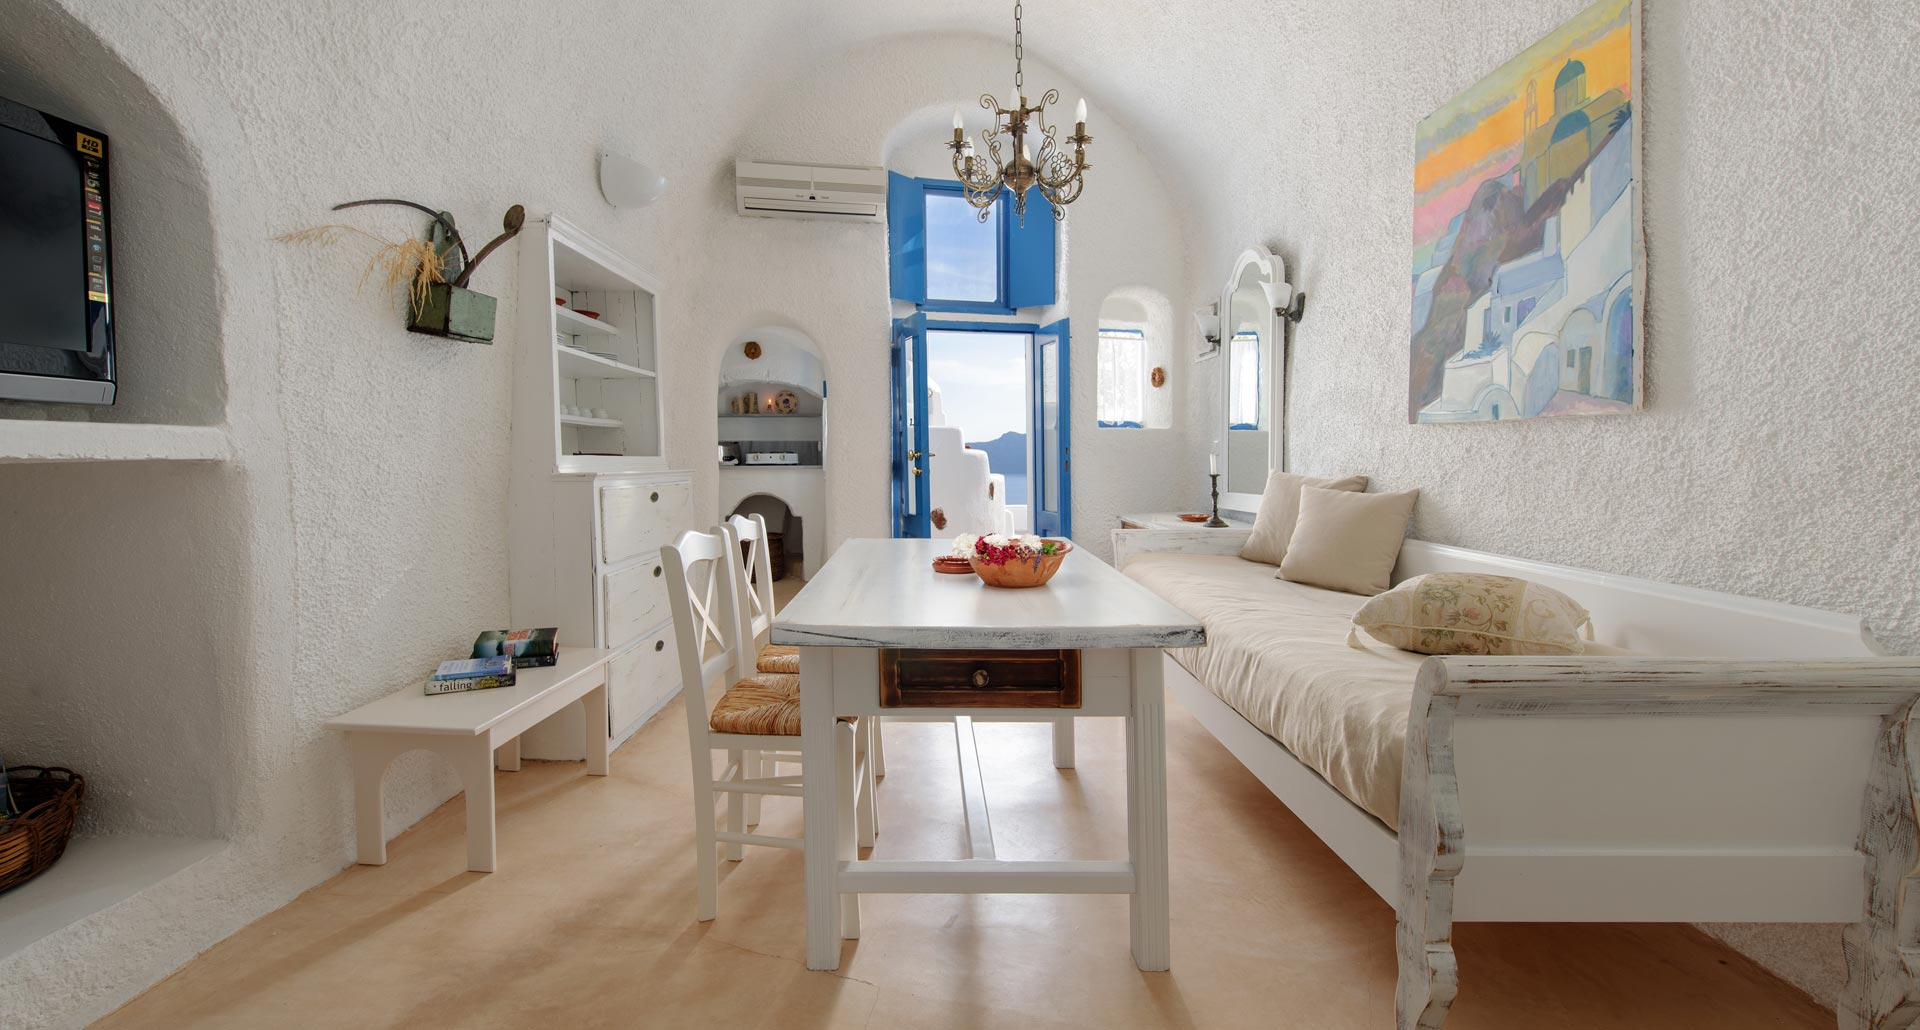 Strogili Apartment Studios in Santorini